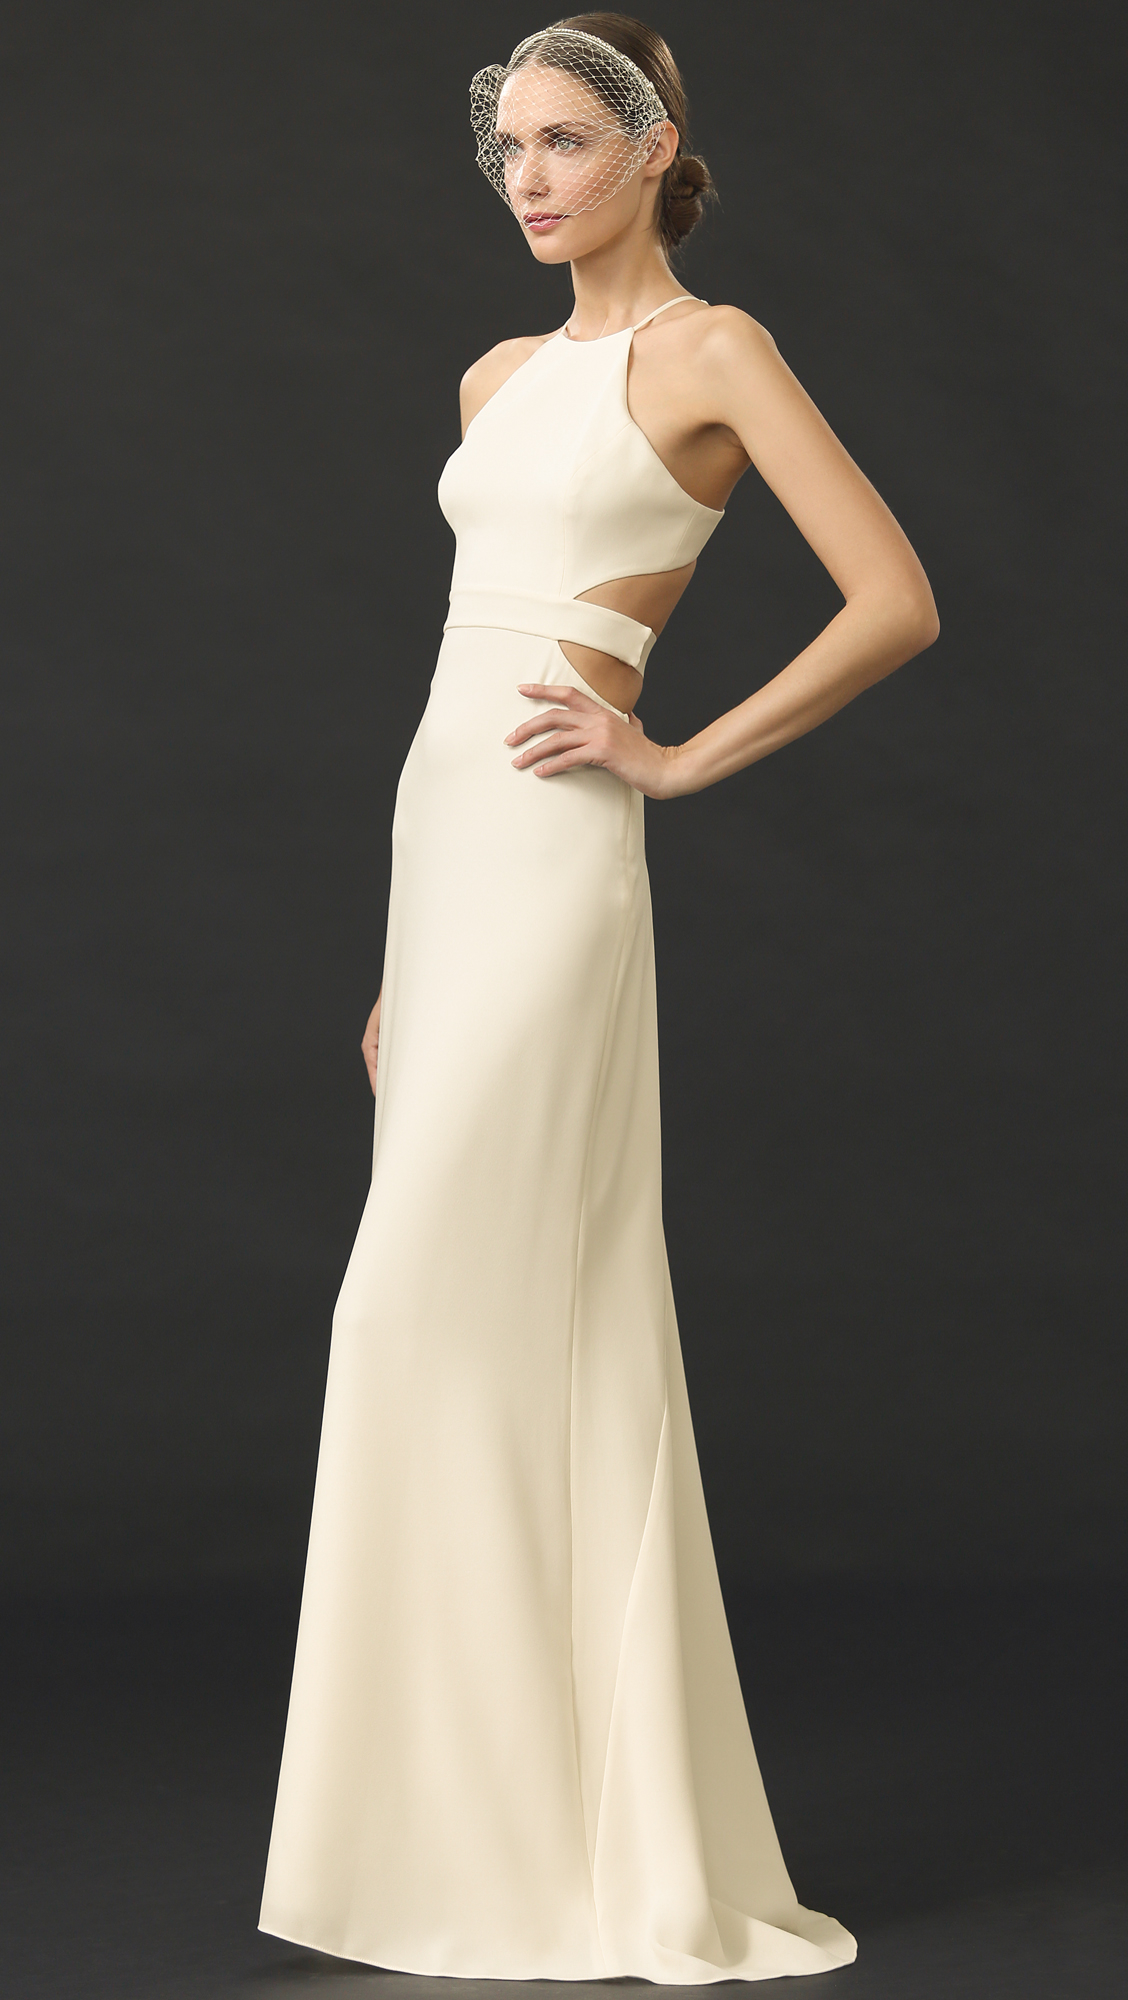 Lyst - Halston Back Cutout Gown in Natural